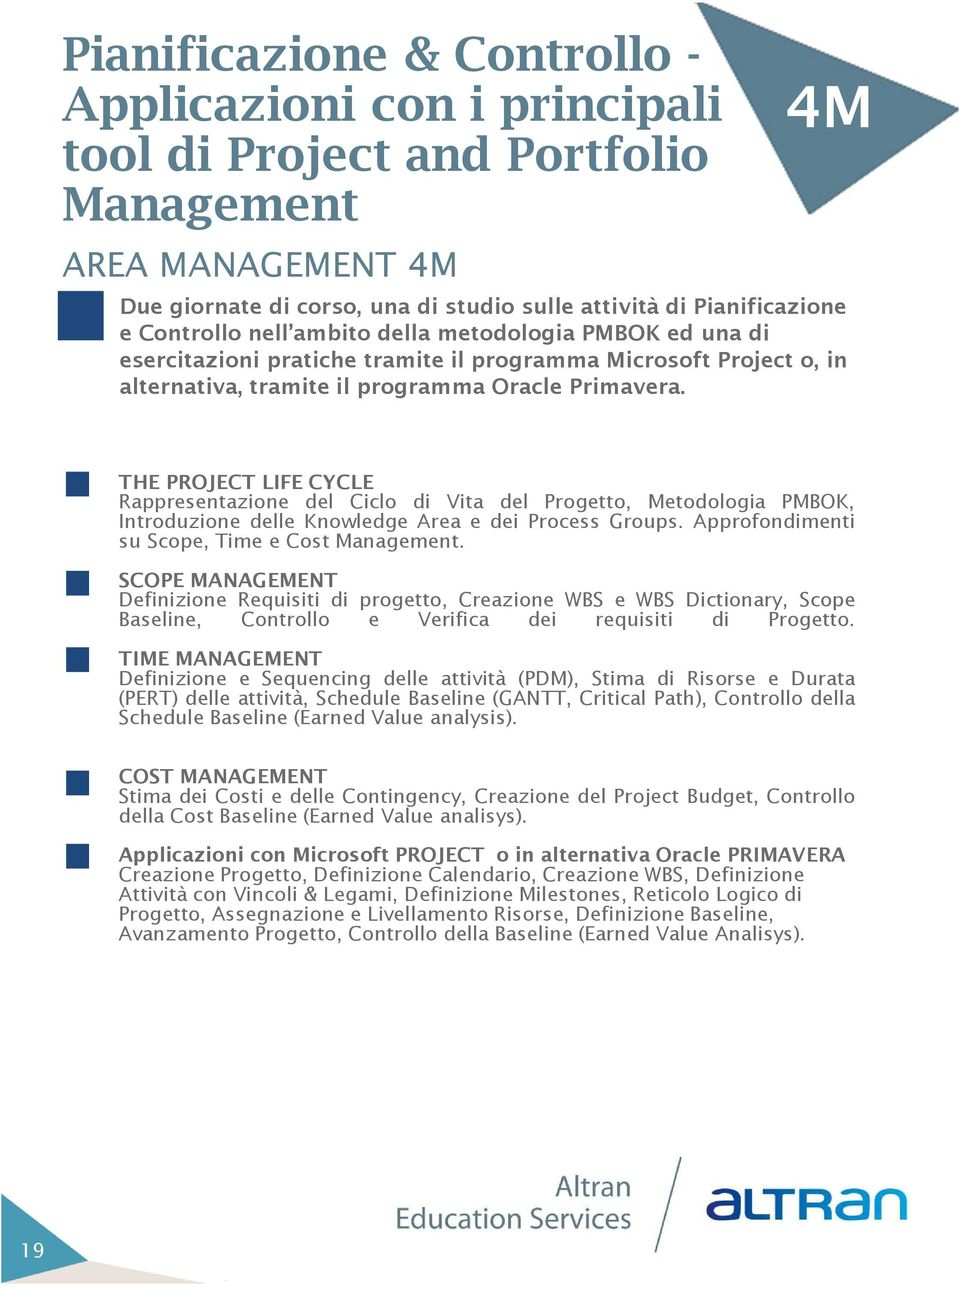 THE PROJECT LIFE CYCLE Rappresentazione del Ciclo di Vita del Progetto, Metodologia PMBOK, Introduzione delle Knowledge Area e dei Process Groups. Approfondimenti su Scope, Time e Cost Management.